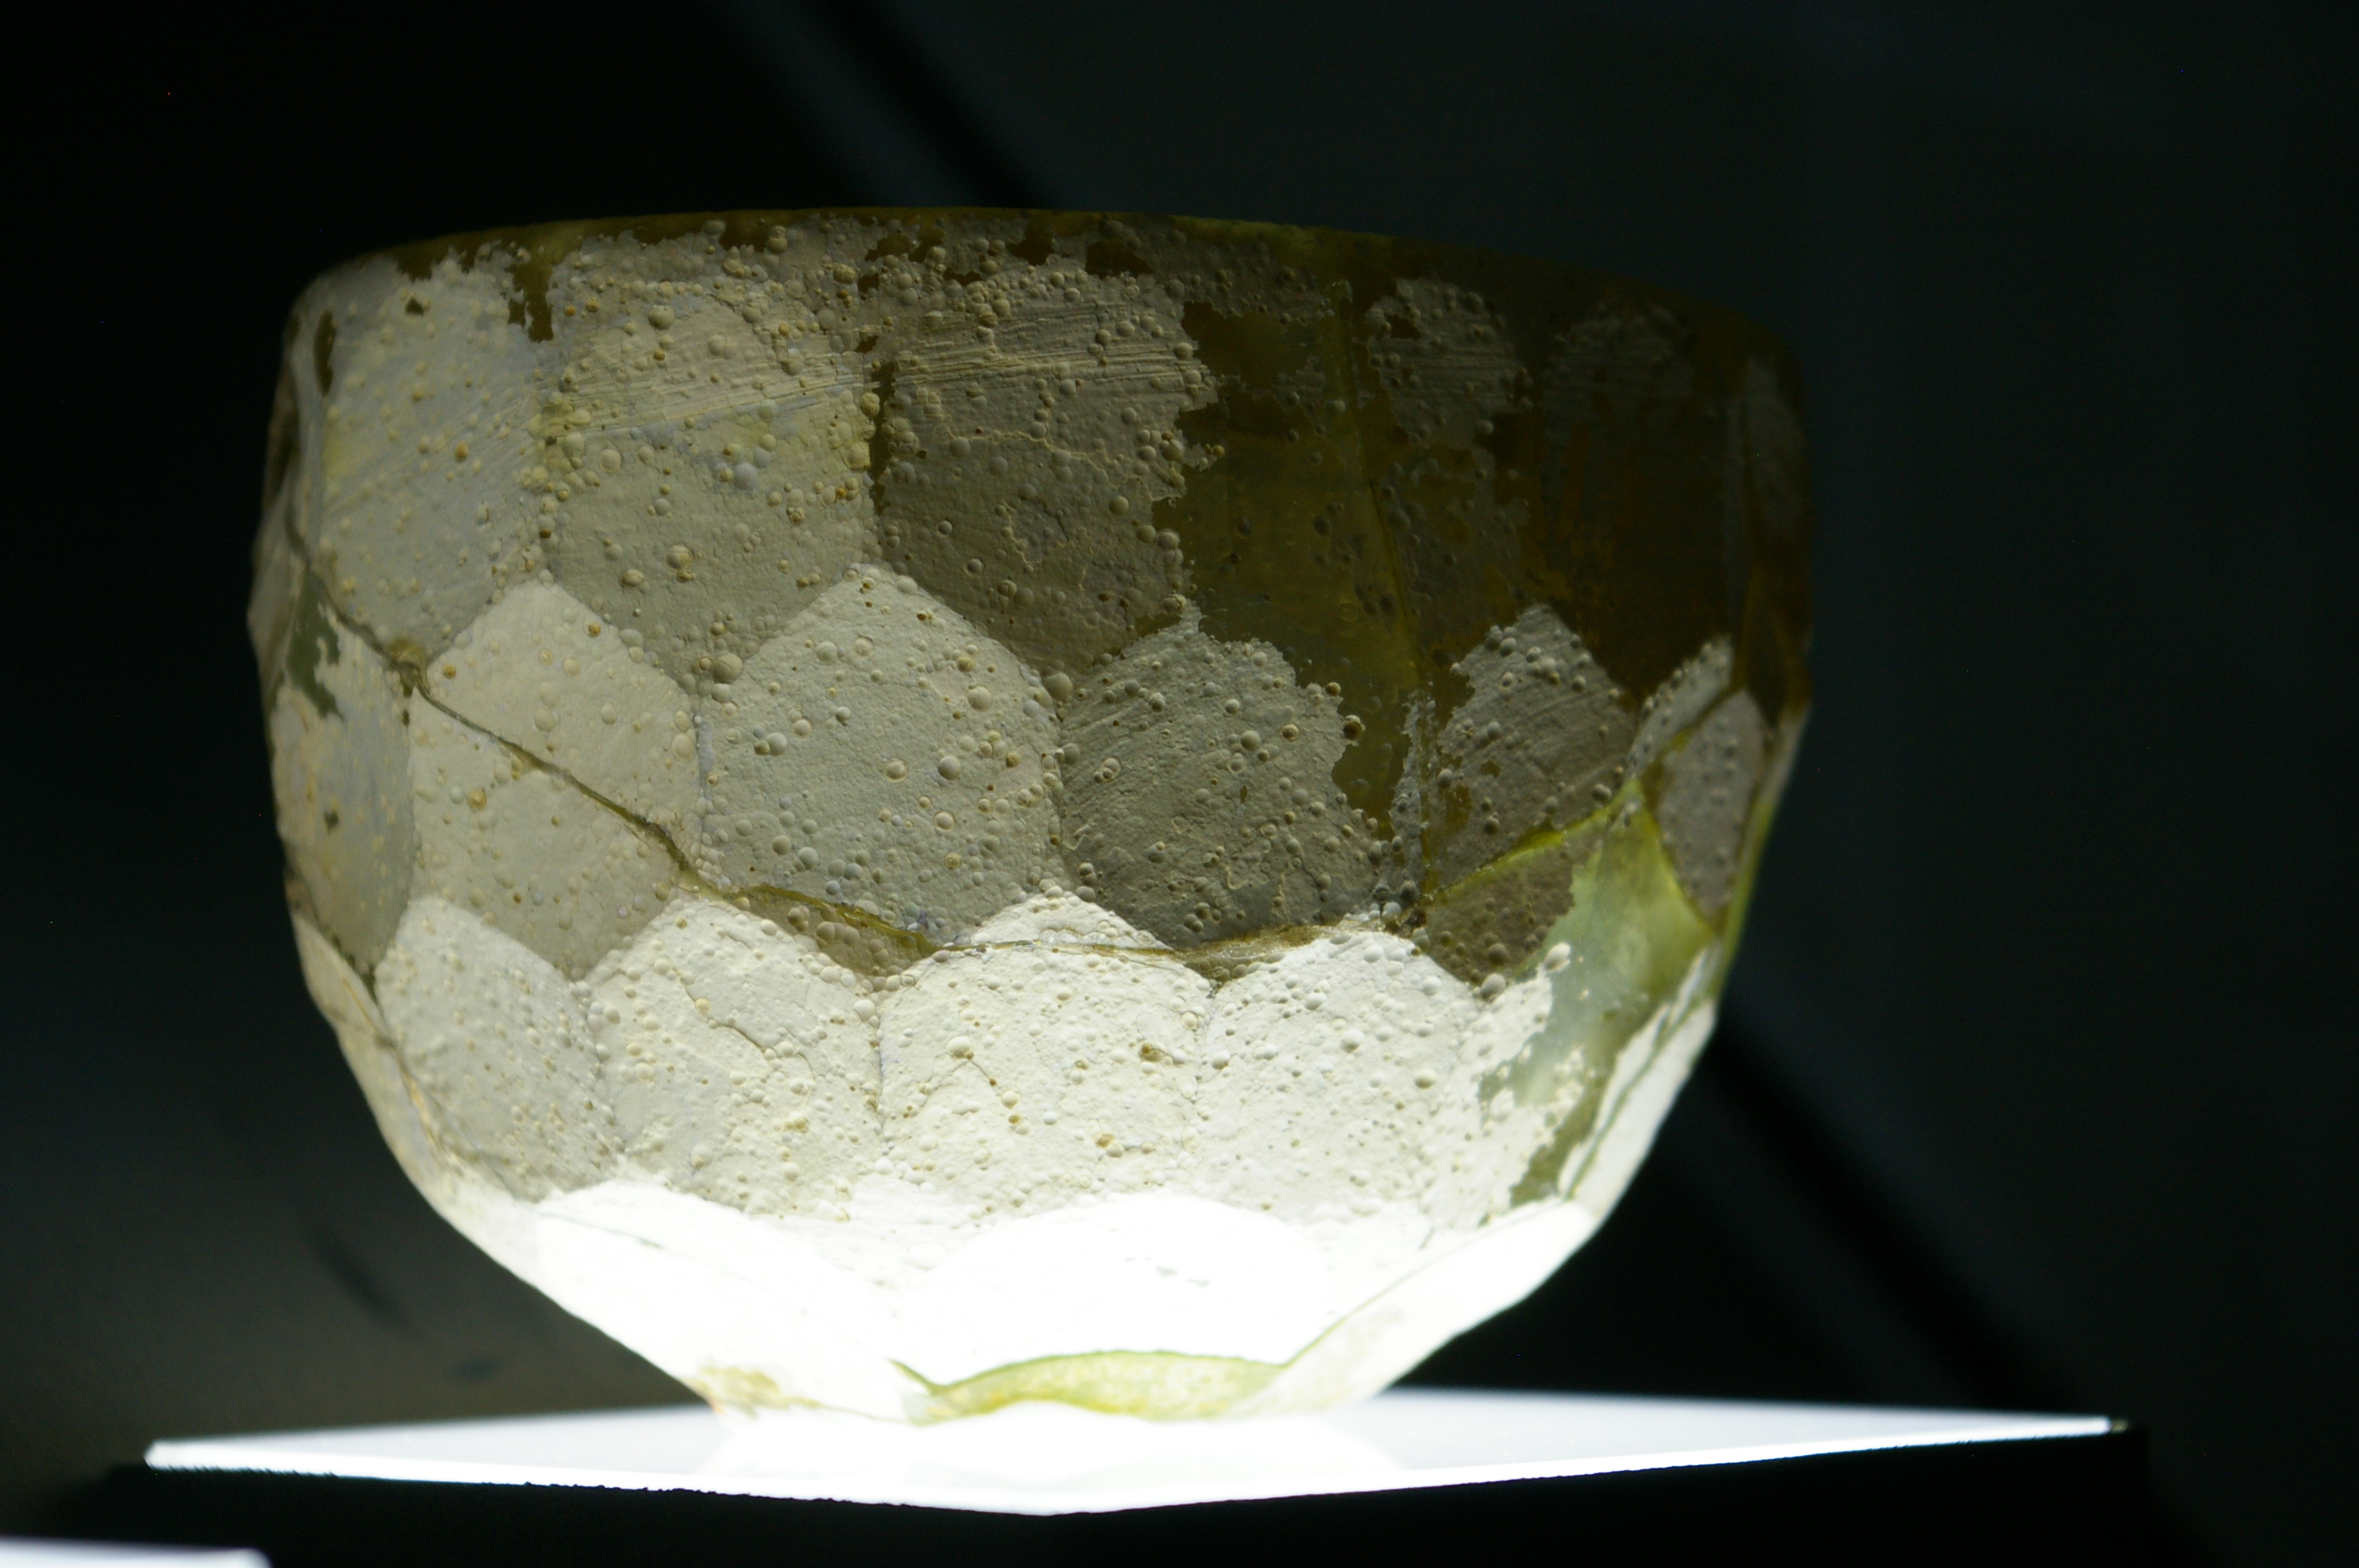 Cut-glass bowl, 3rd century AD, Gilan, northwest Iran